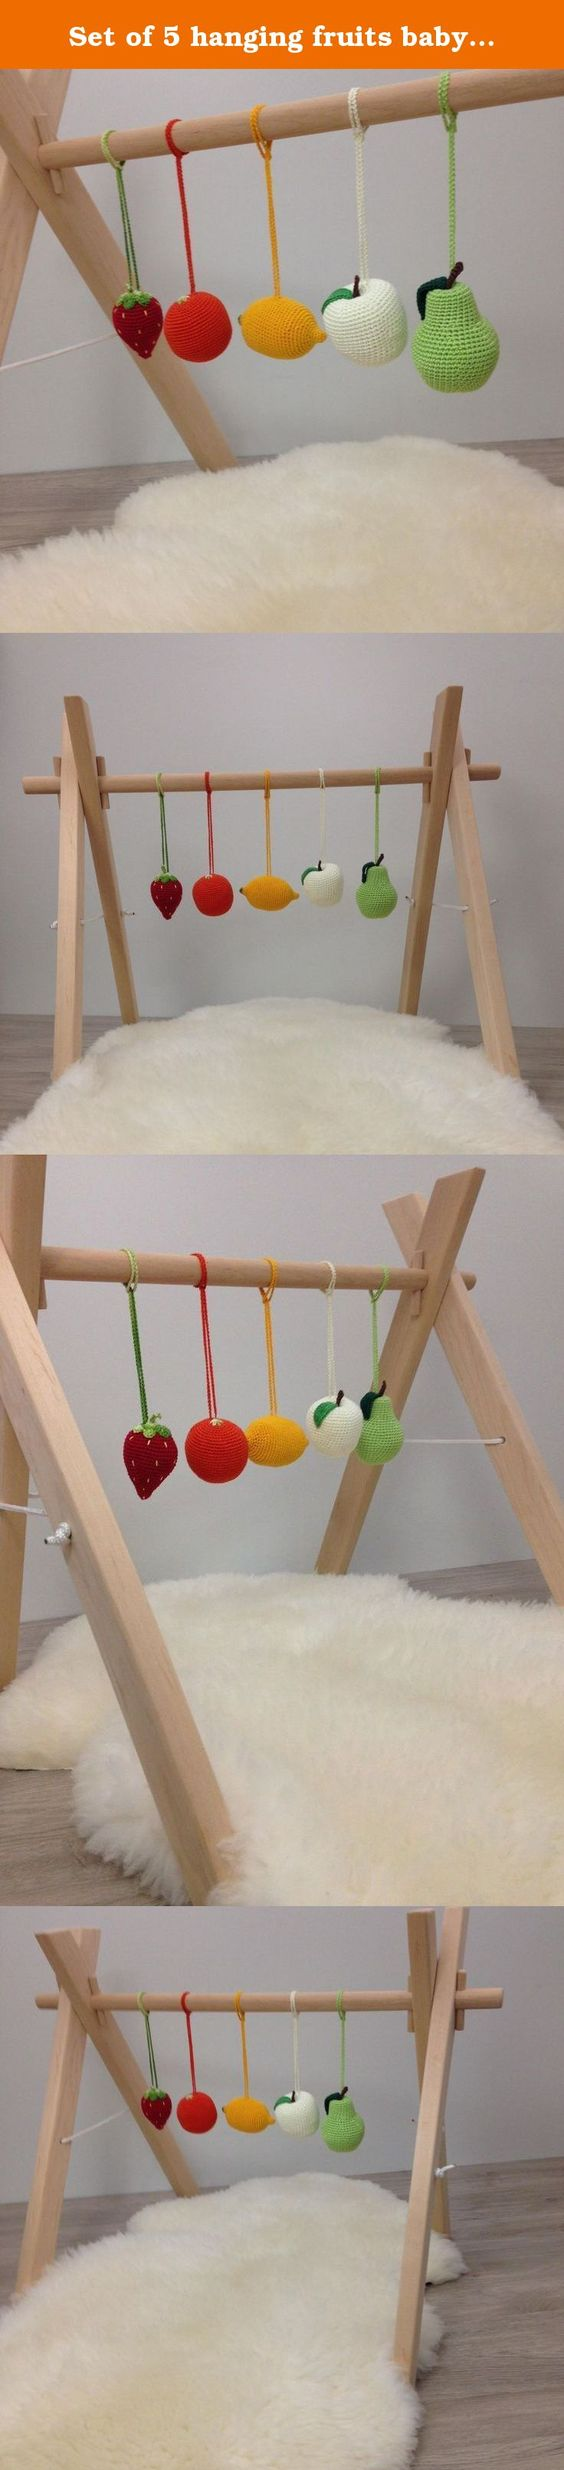 Crib gym for babies - Set Of 5 Hanging Fruits Baby Gym Toy Crib Toy Shower Gift Organic